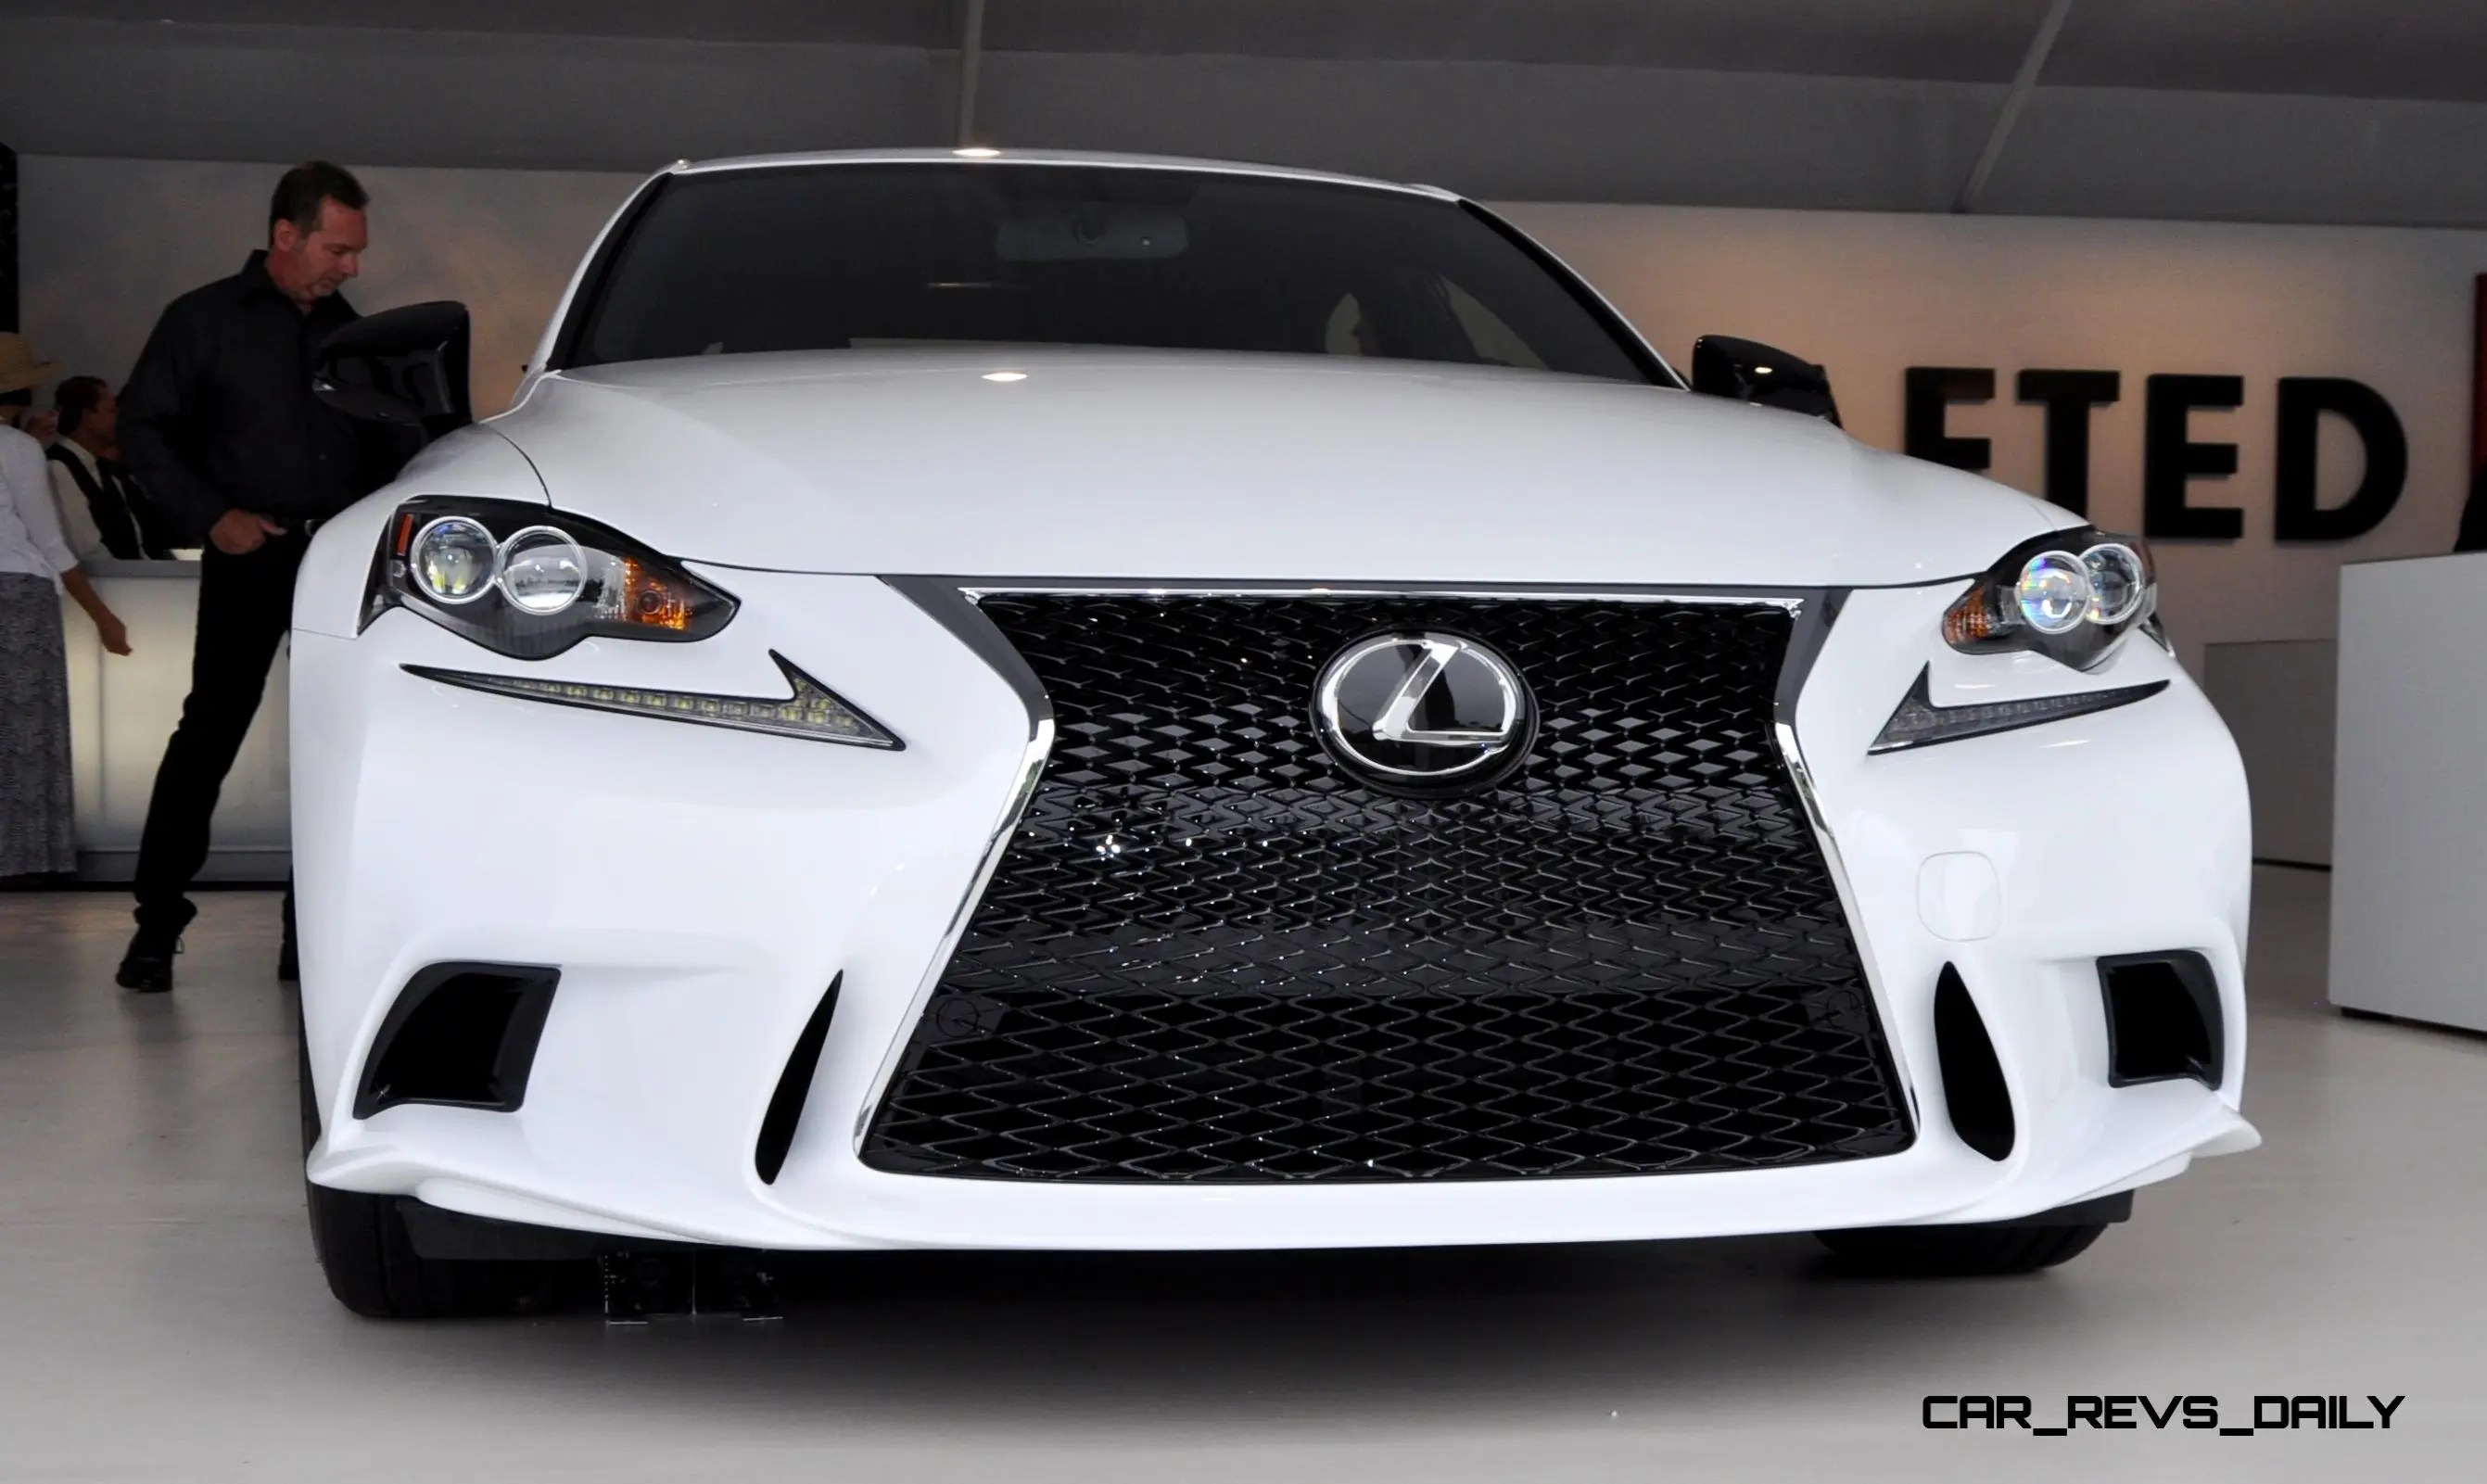 Car Revs Daily 2015 Lexus IS250 F Sport CRAFTED LINE 2